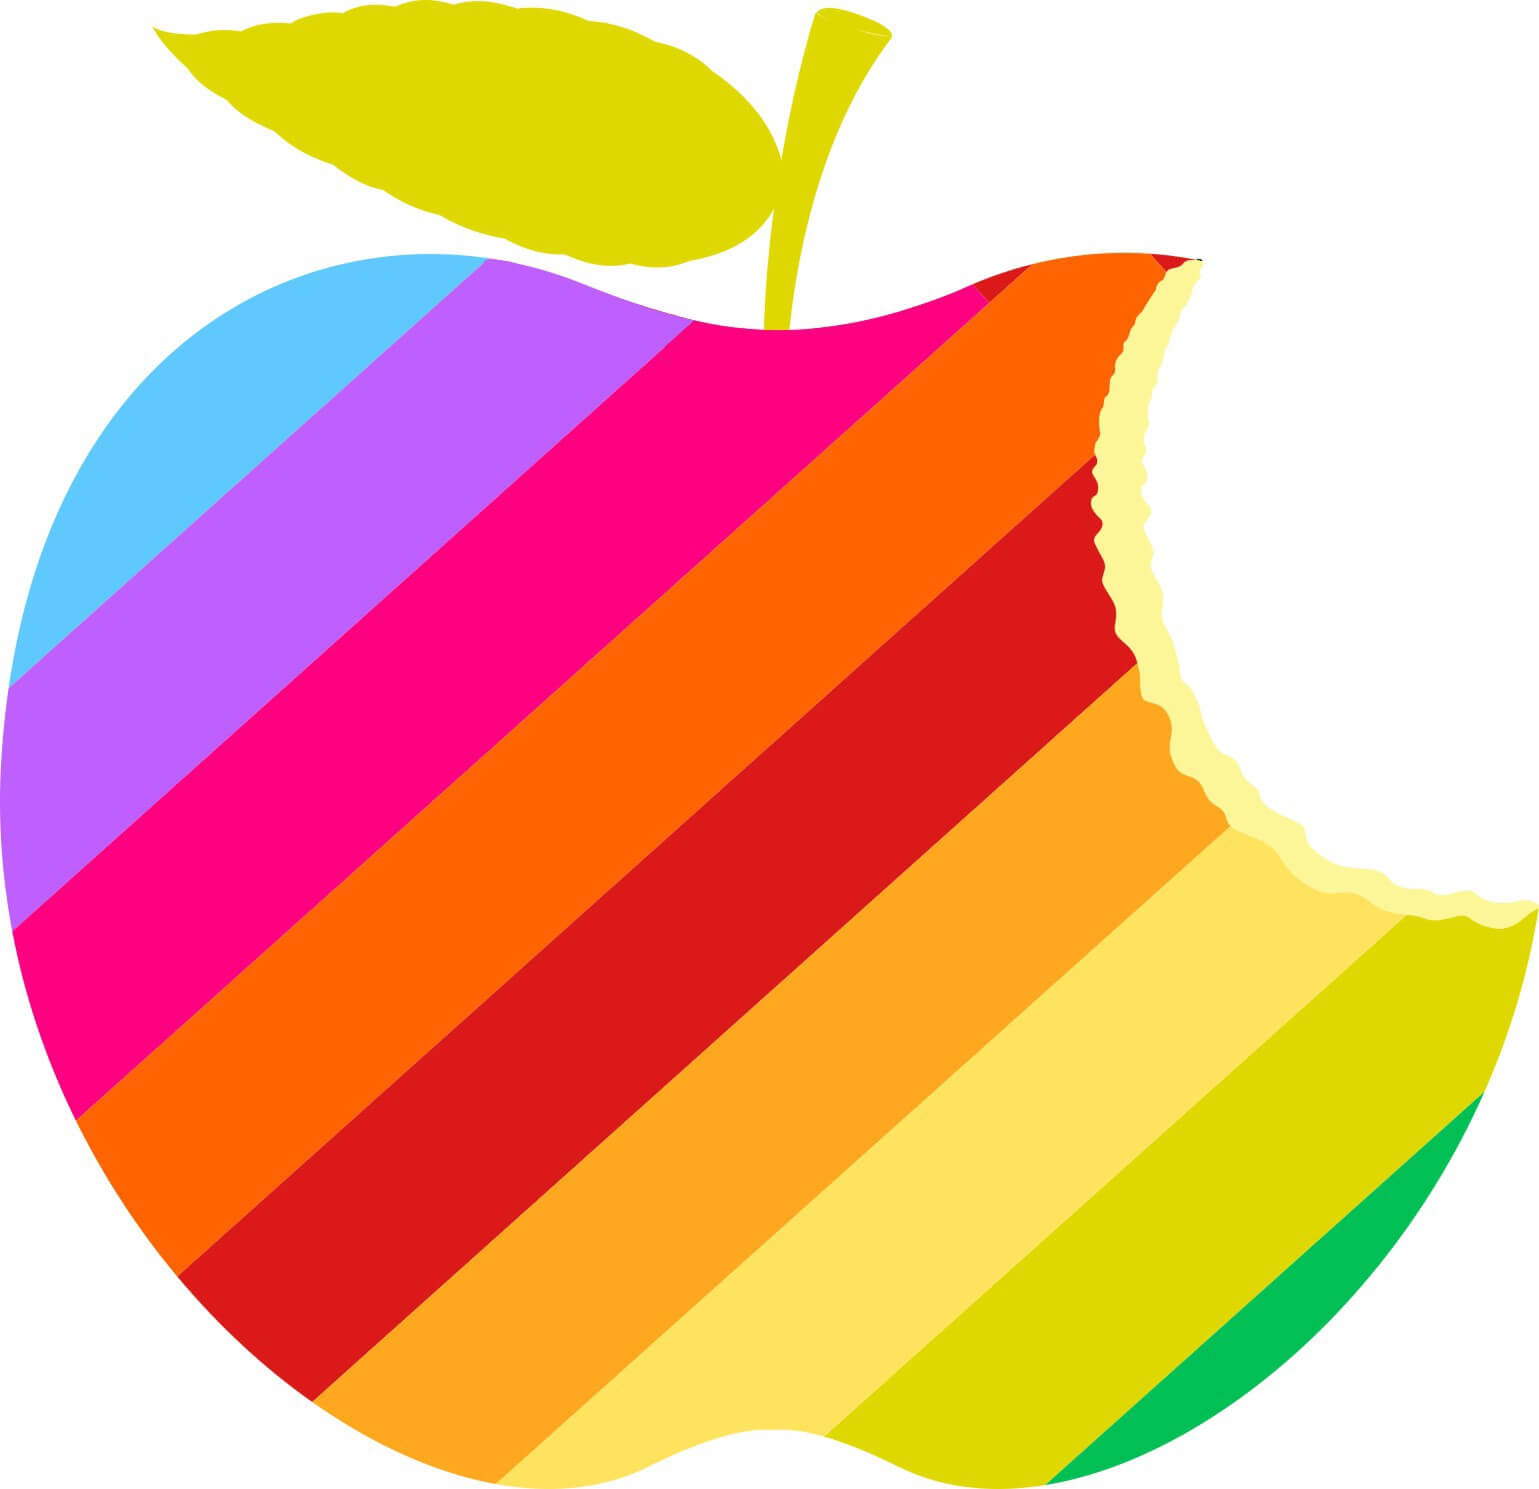 A cartoon apple with diagonal rainbow stripes and a bit taken out of the top right corner